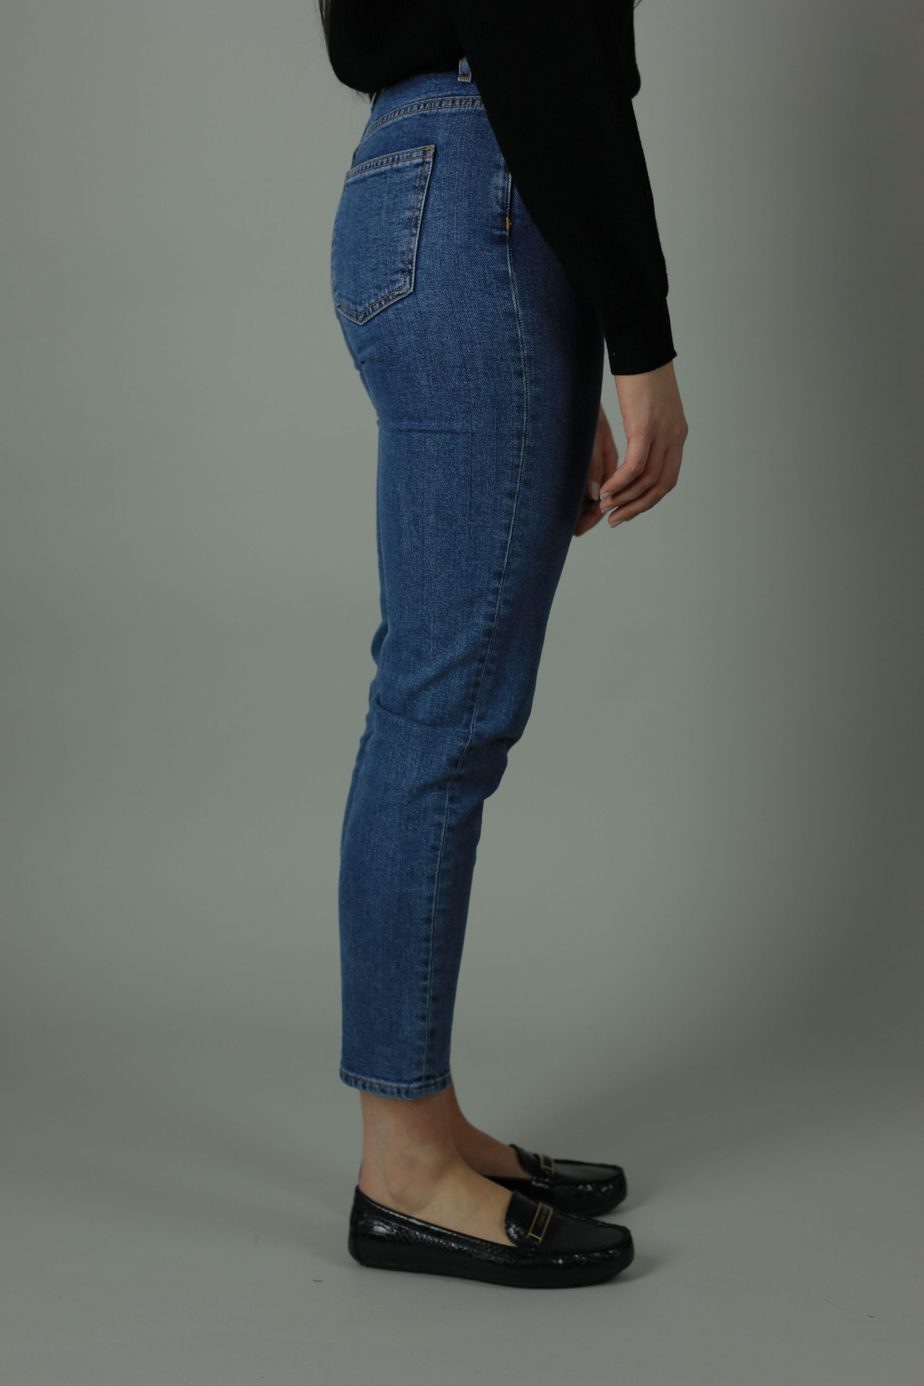 The High waist Lena jean is 98% cotton and 2% Elastane. Lena The Hague jean is cropped for summer style , designed for comfort thesehigh quality jeans will meet every new year with you. Side view.